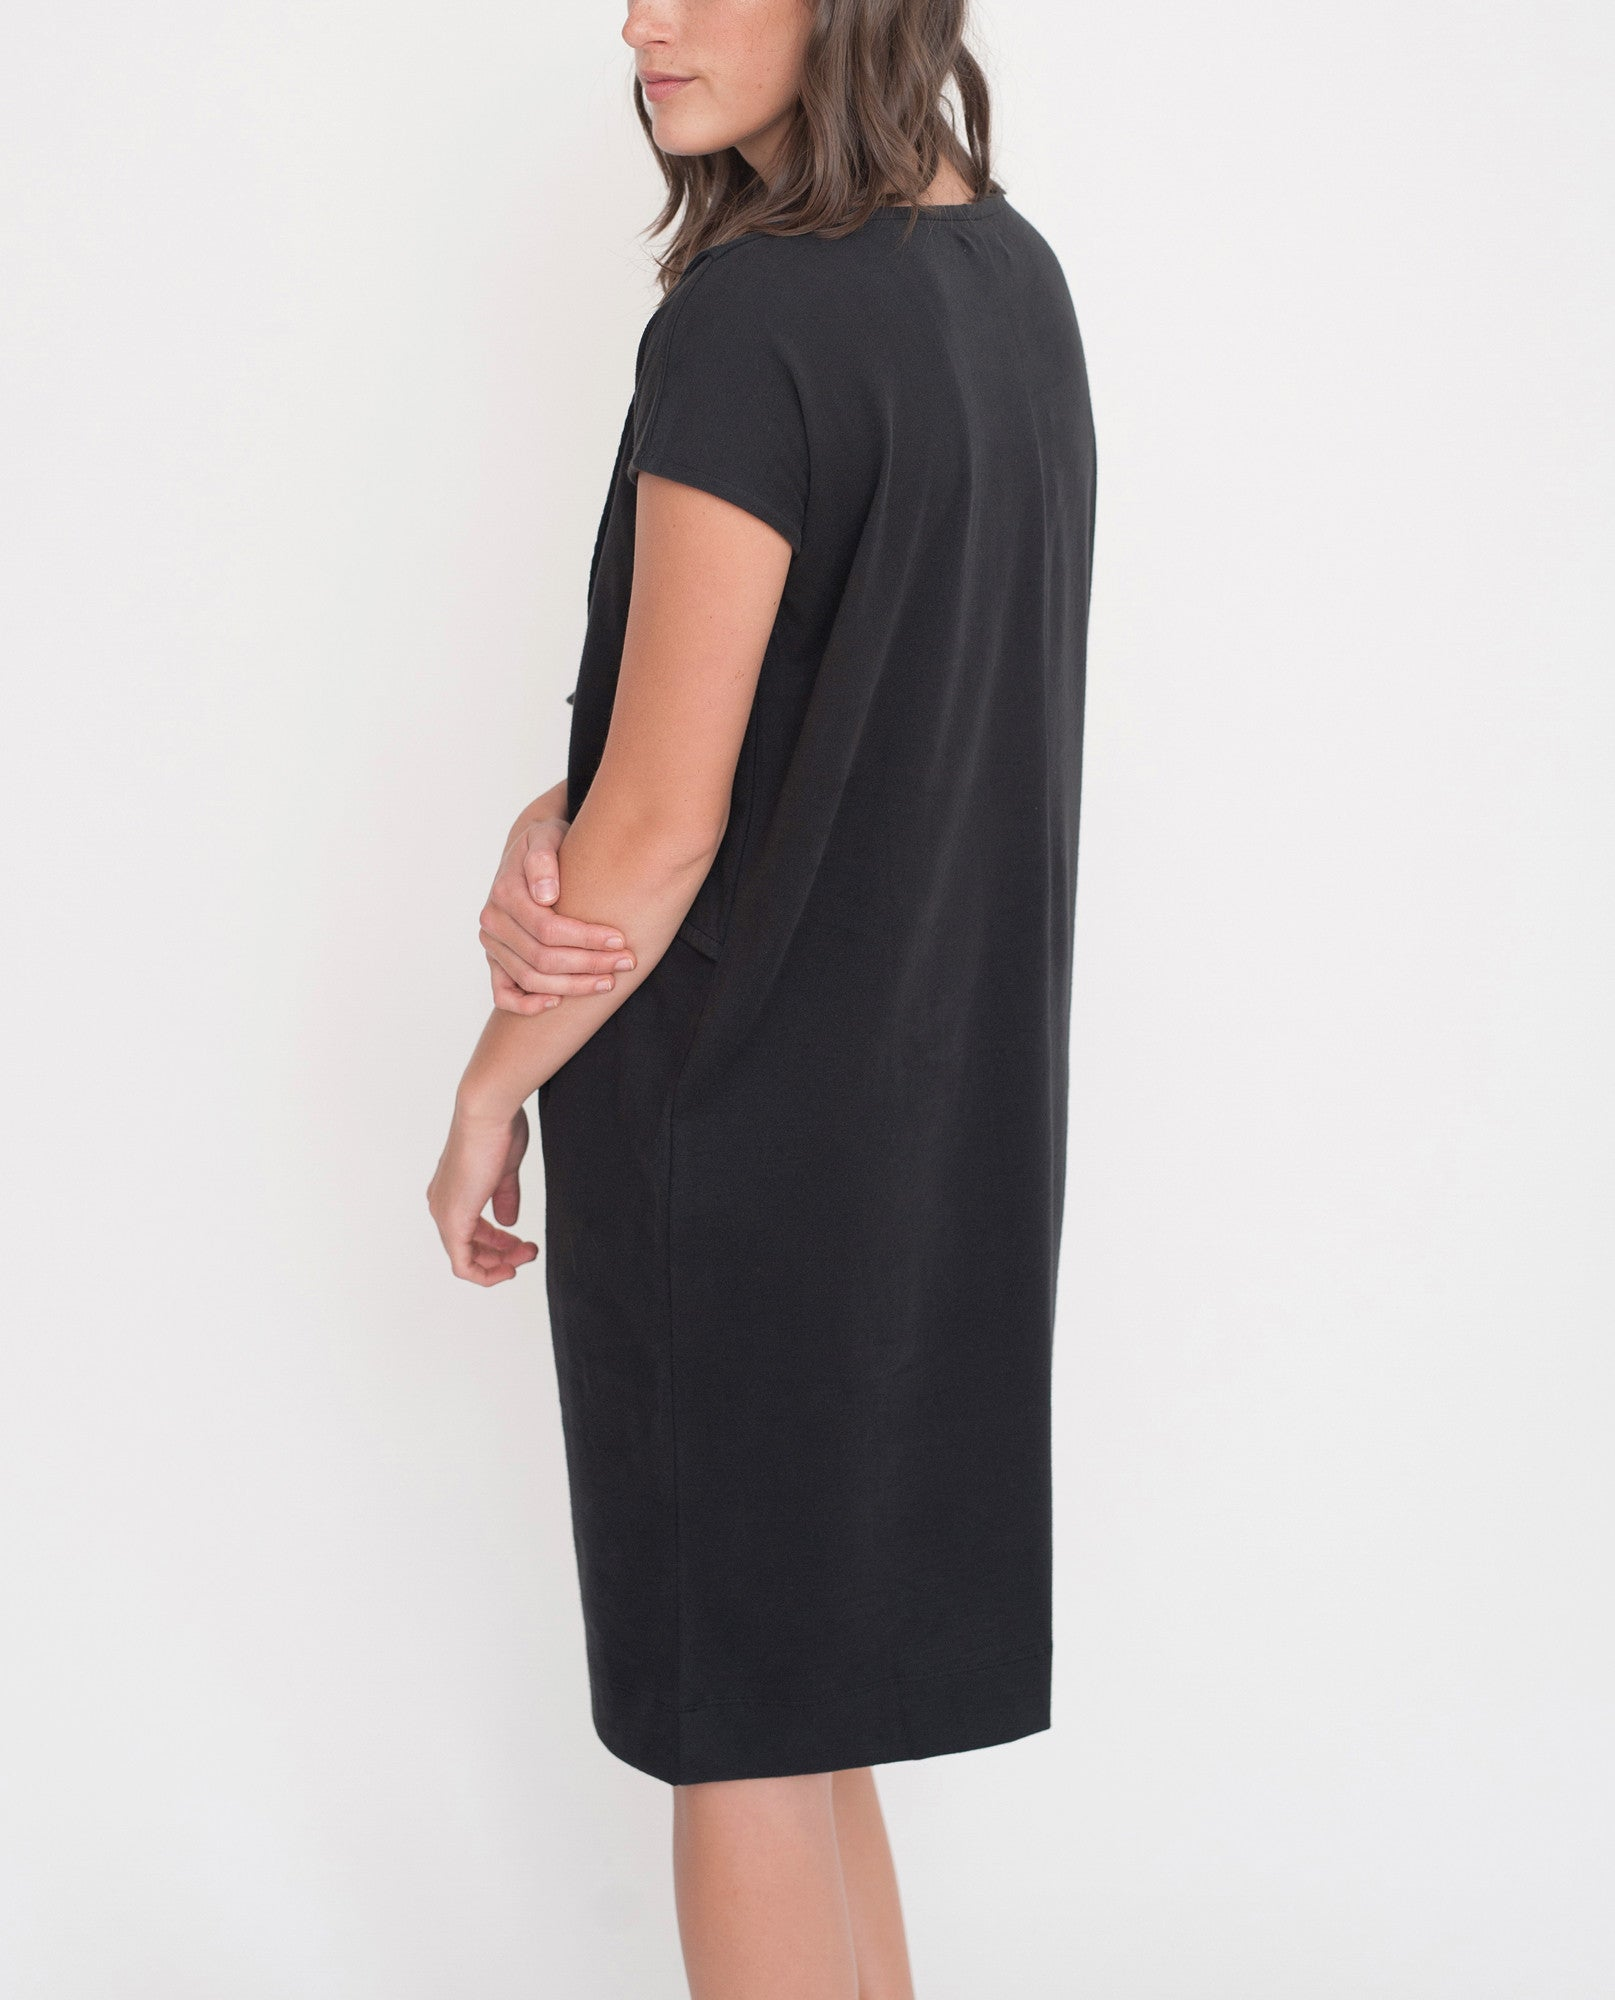 KAYE Organic Cotton Dress